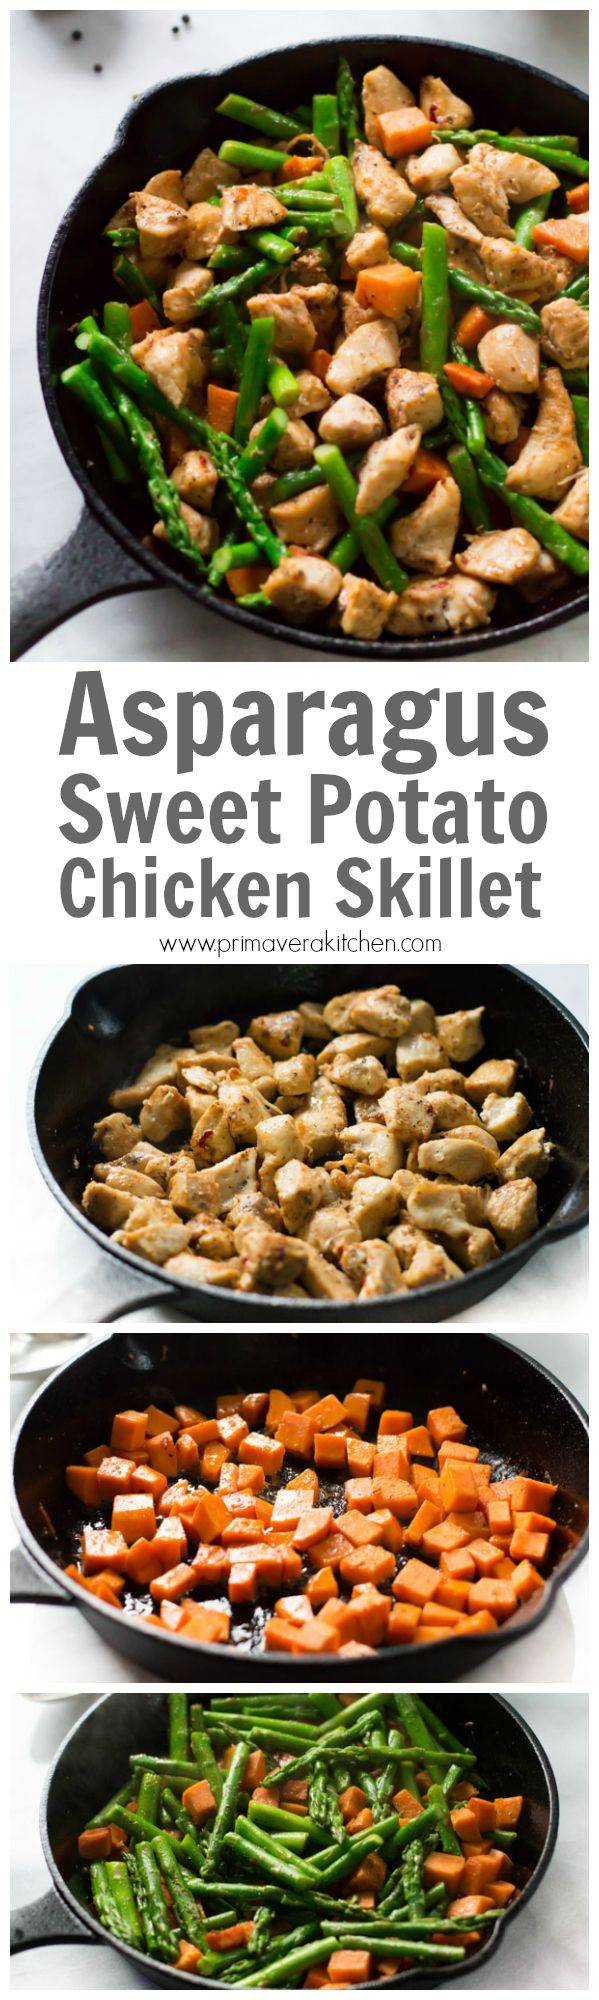 手机壳定制handbags on sale cheap This Asparagus Sweet Potato Chicken Skillet recipe is a delicious healthy and easy to make meal that will be on your dinner table in less than  minutes This is a gluten free and paleo for your busy weeknight dinner